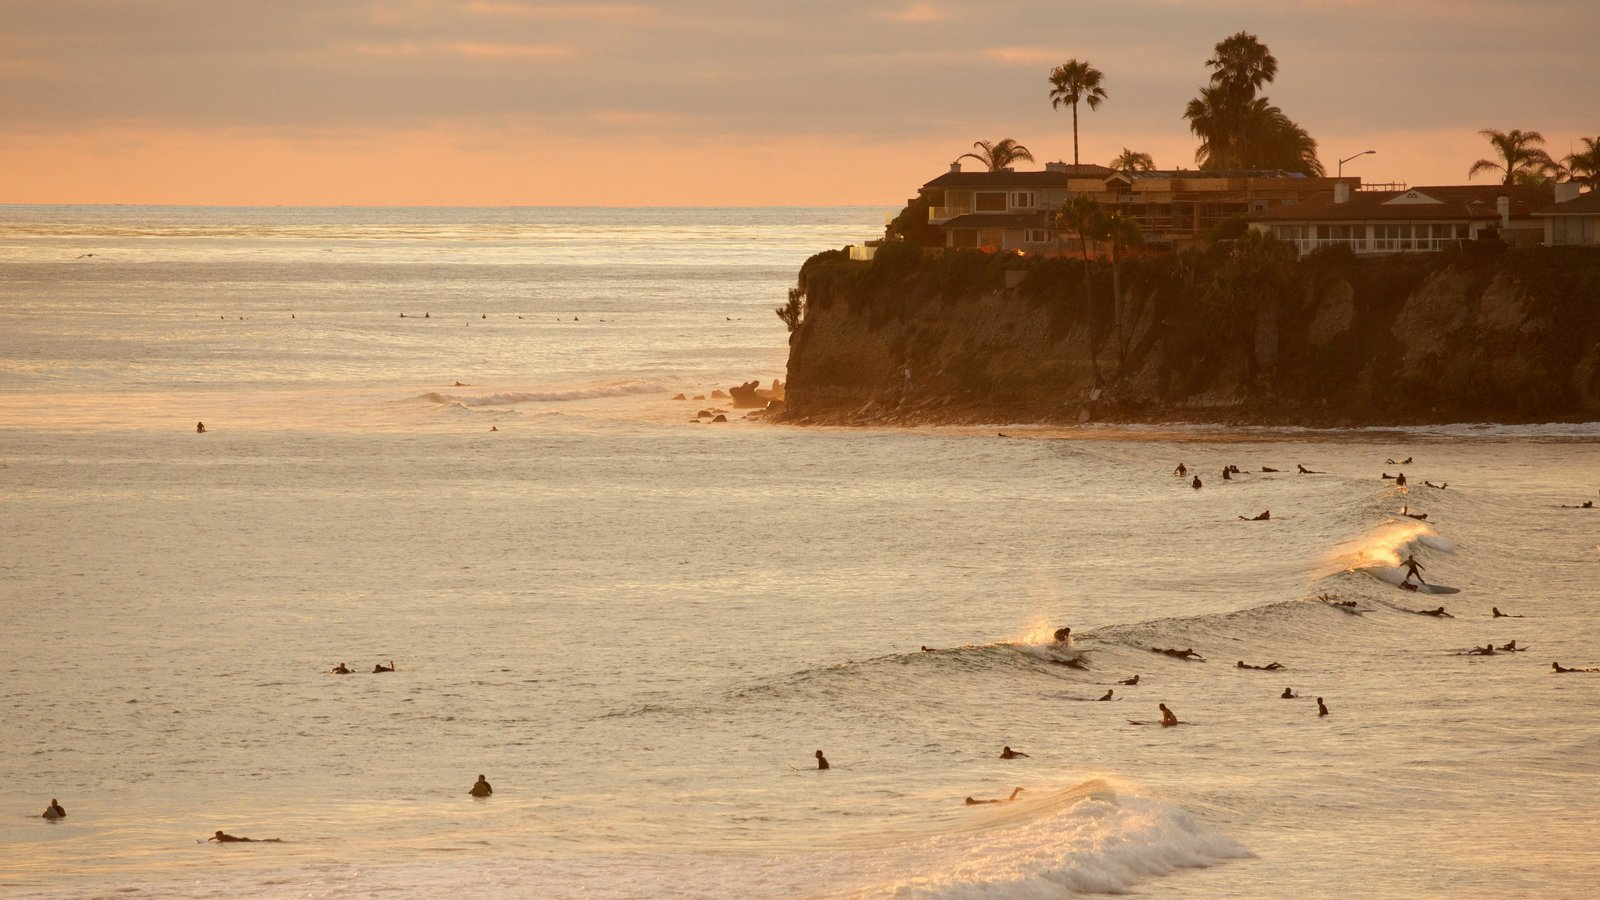 Pacific Beach Park showing general coastal views, surfing and swimming